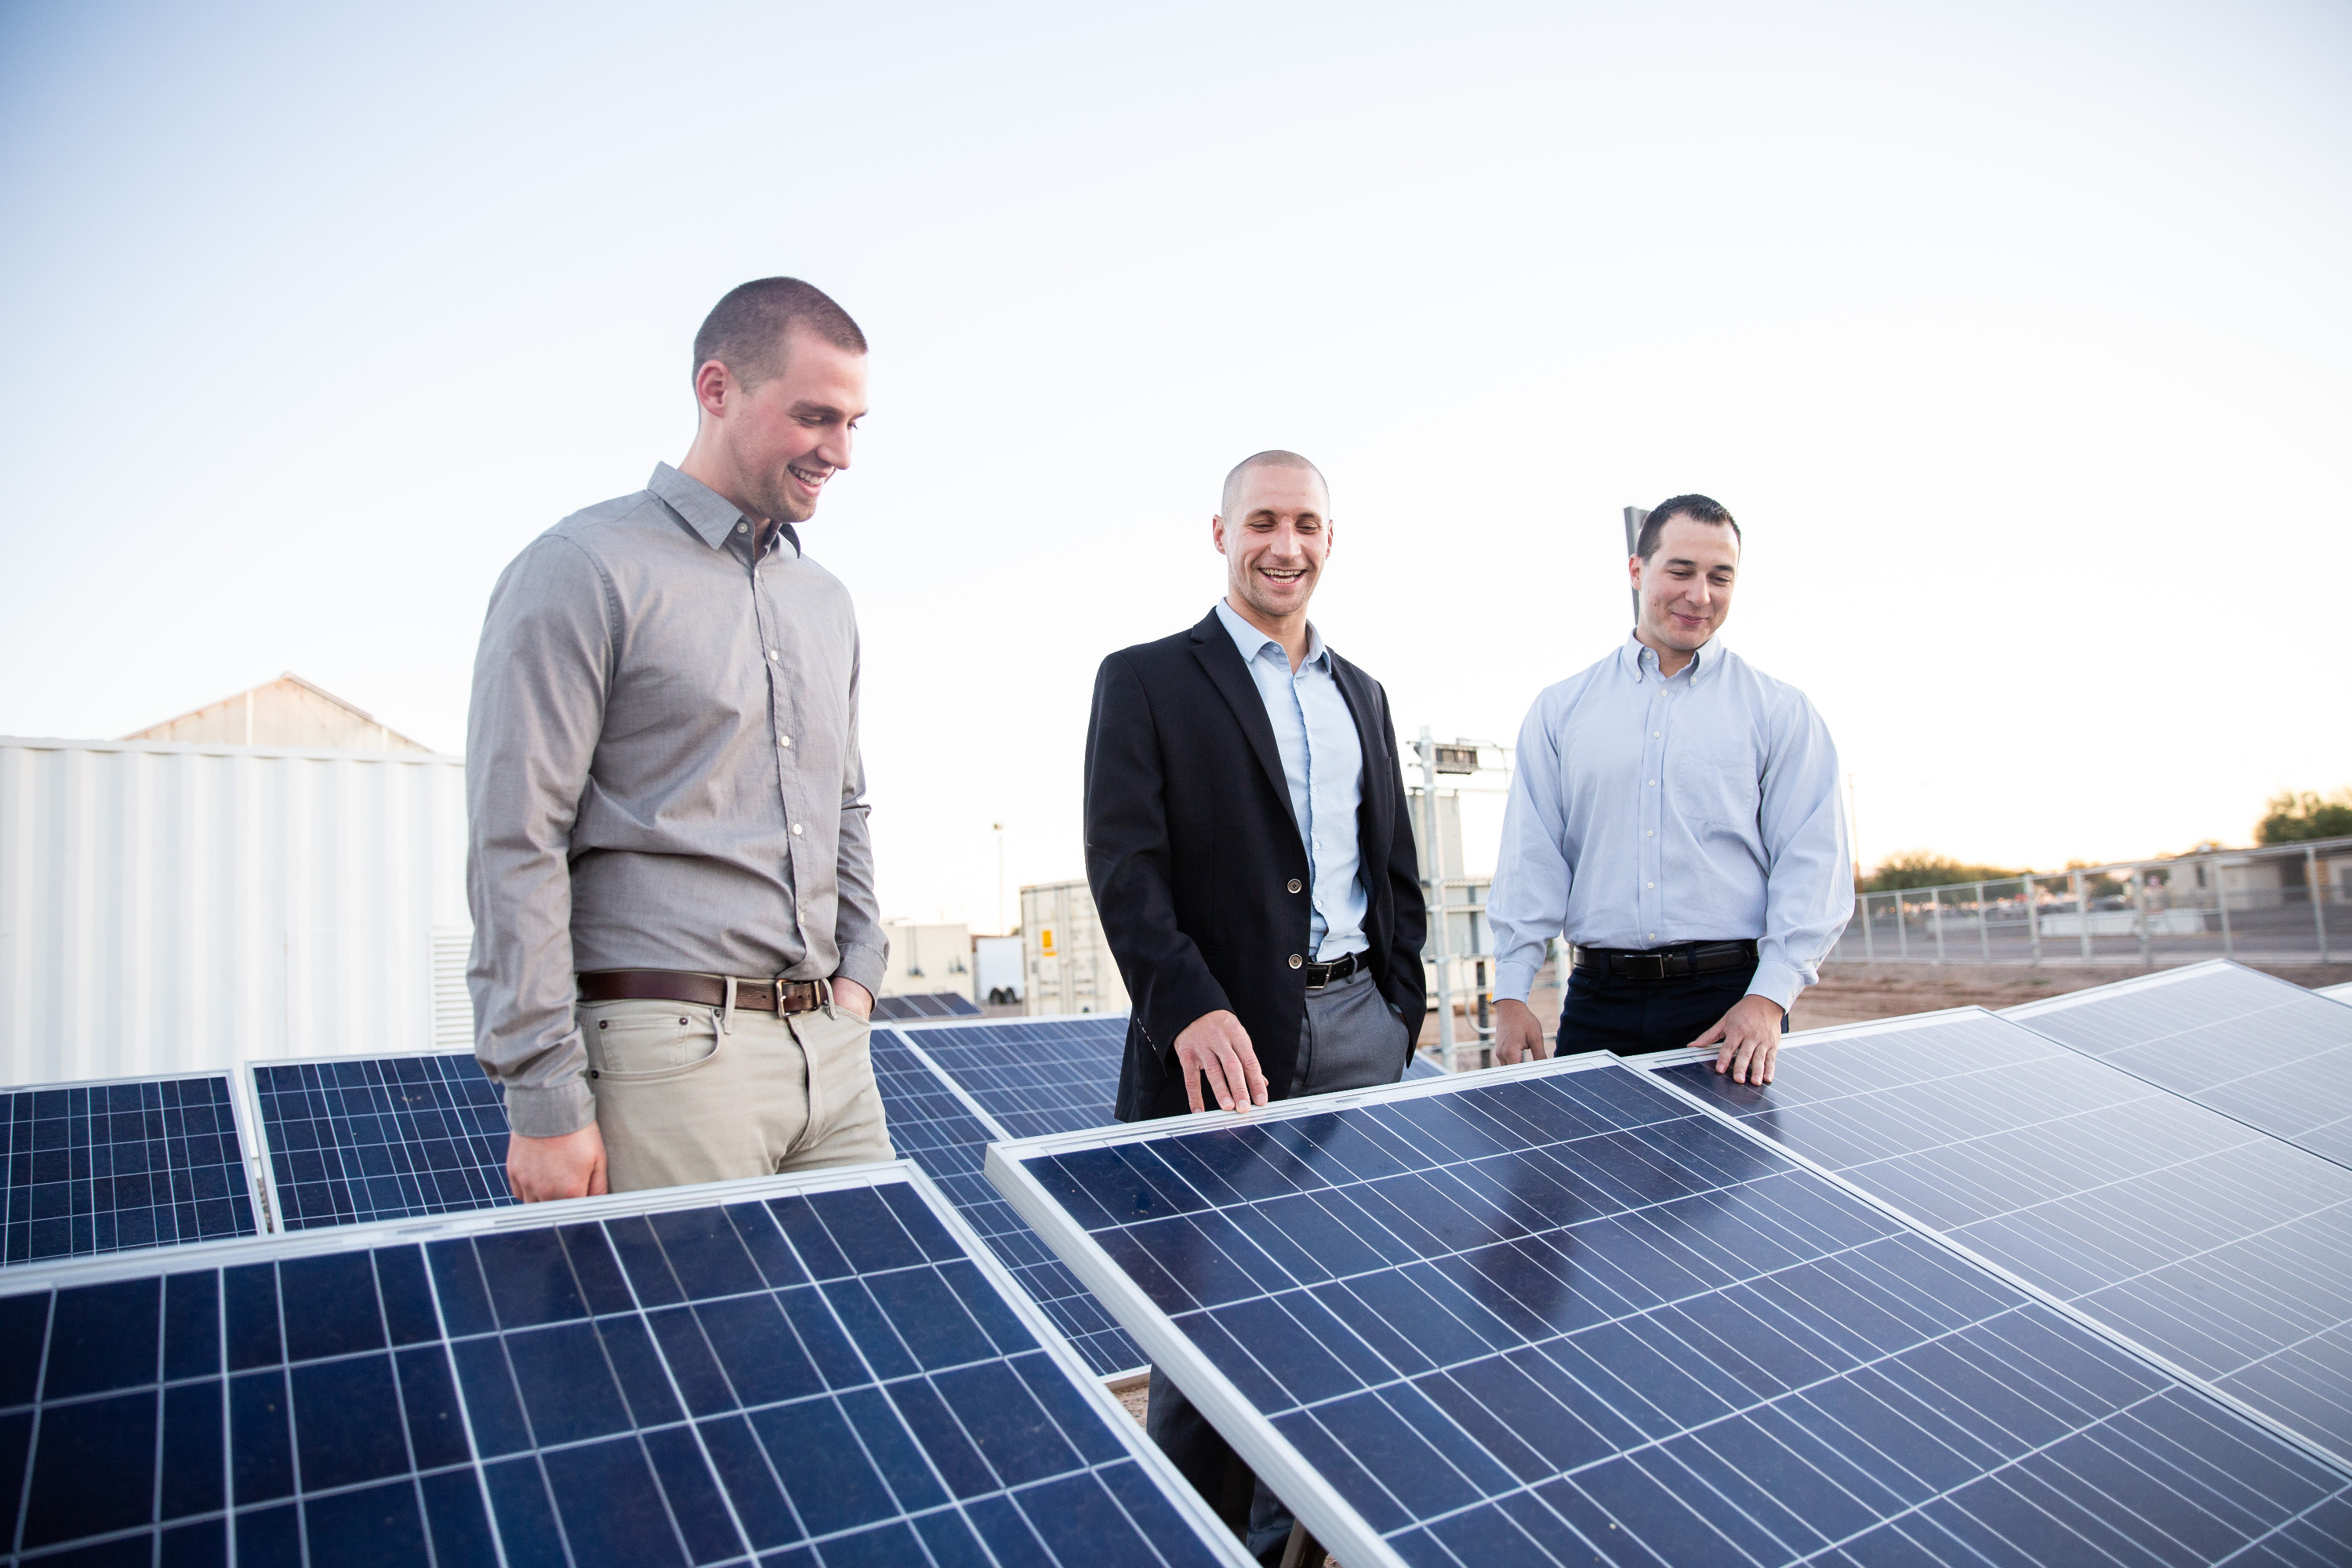 Image of three people looking at solar panels.